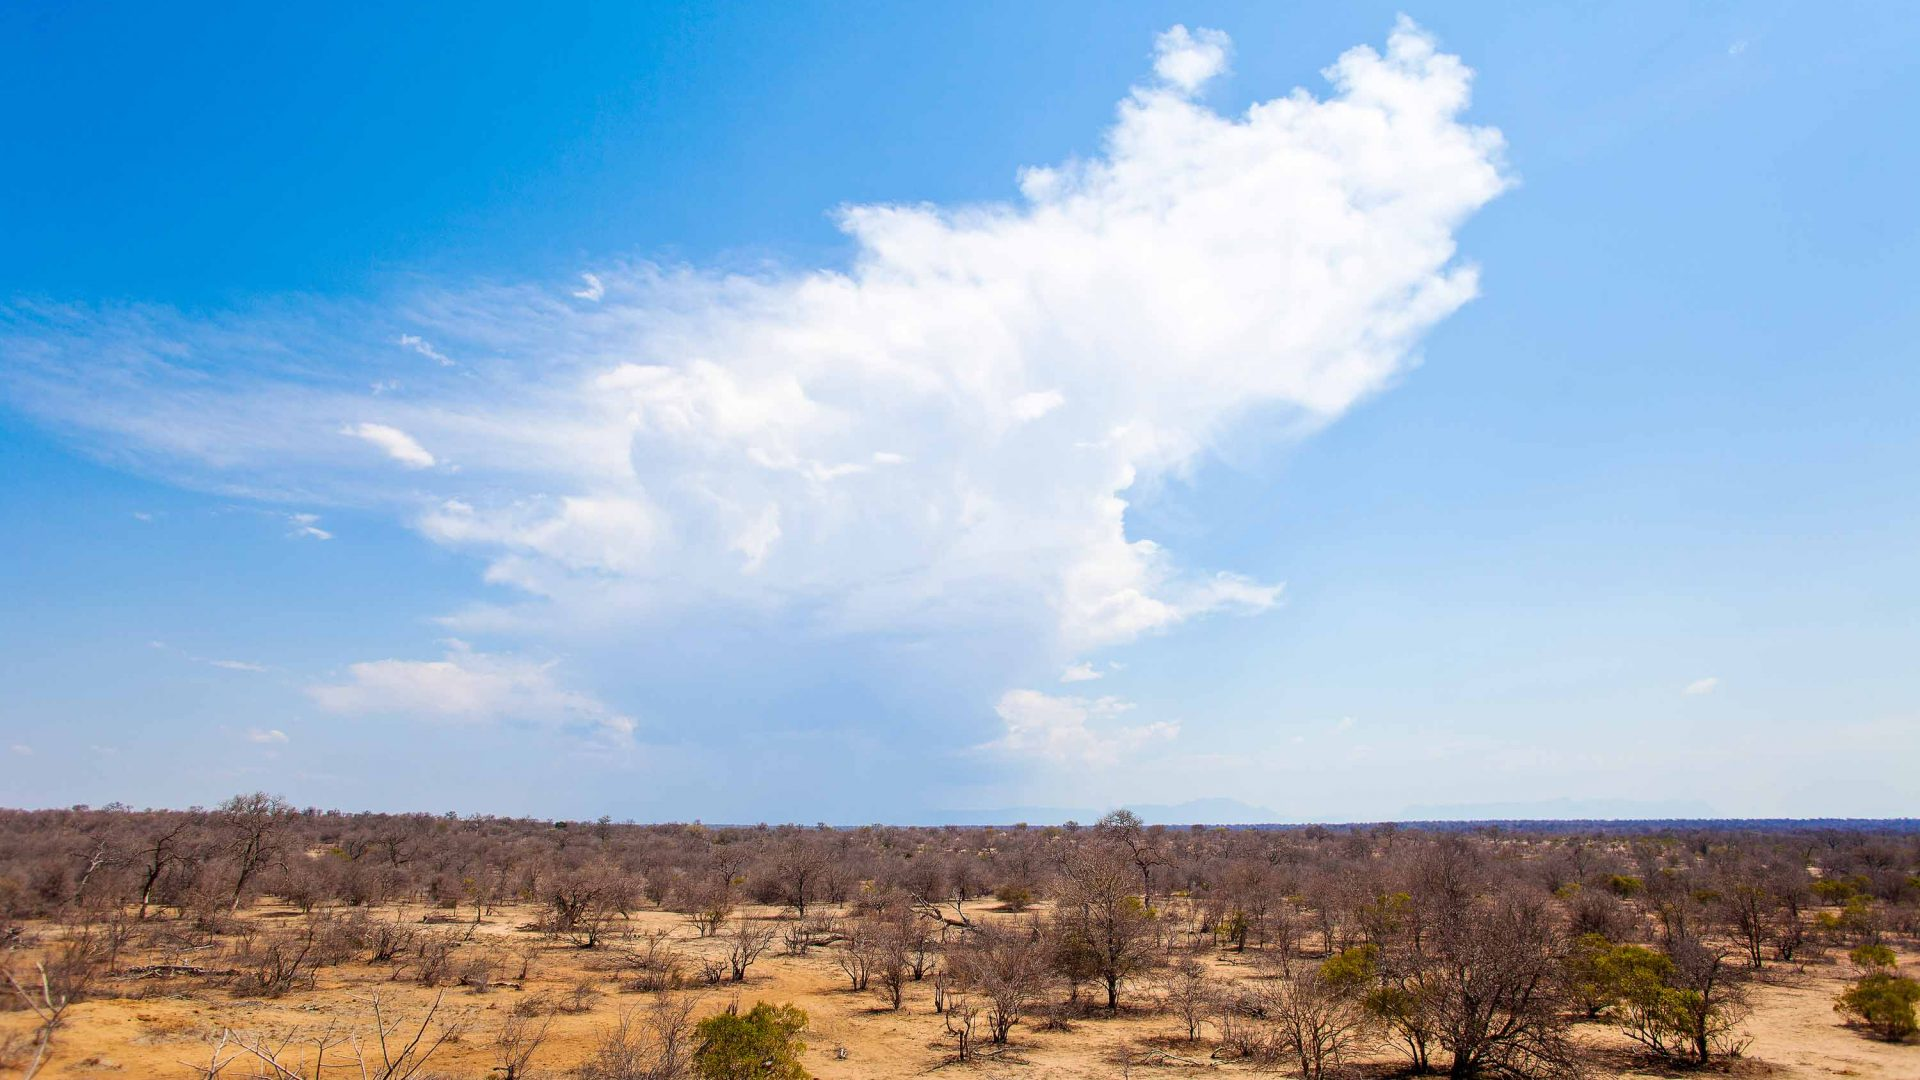 A cloud over Great Kruger Lowveld in Balule Nature Reserve in South Africa.